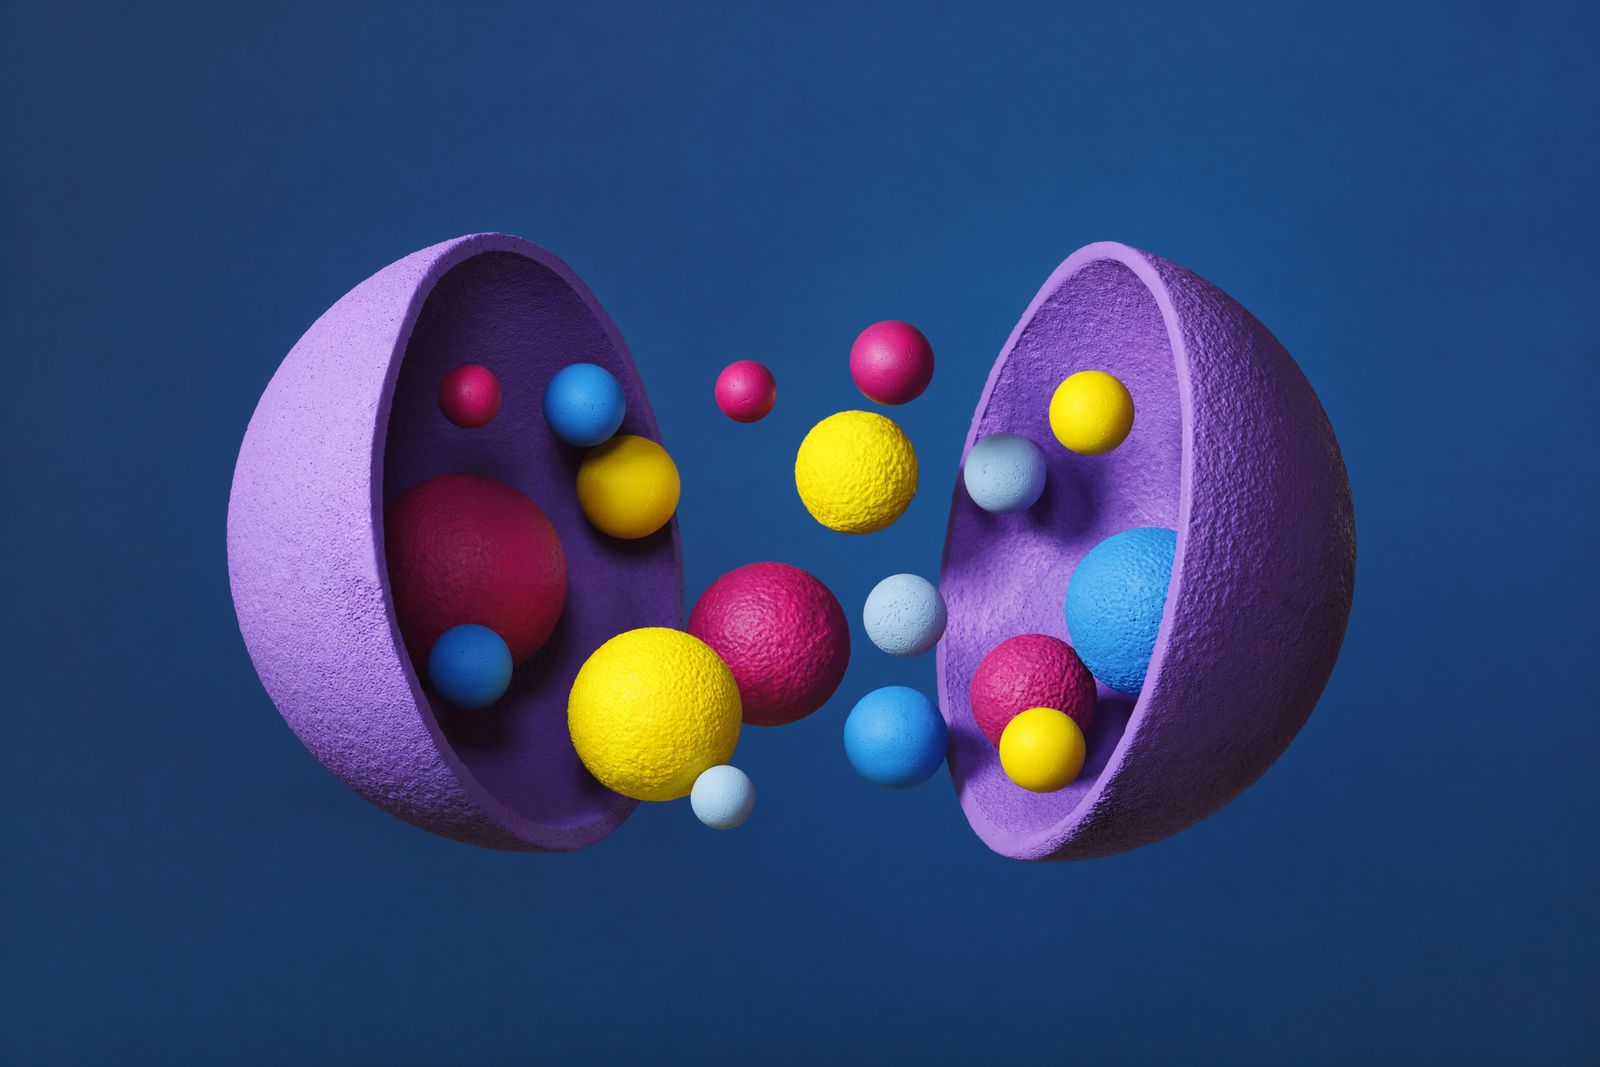 Abstract multi-colored objects levitation in mid air on blue background